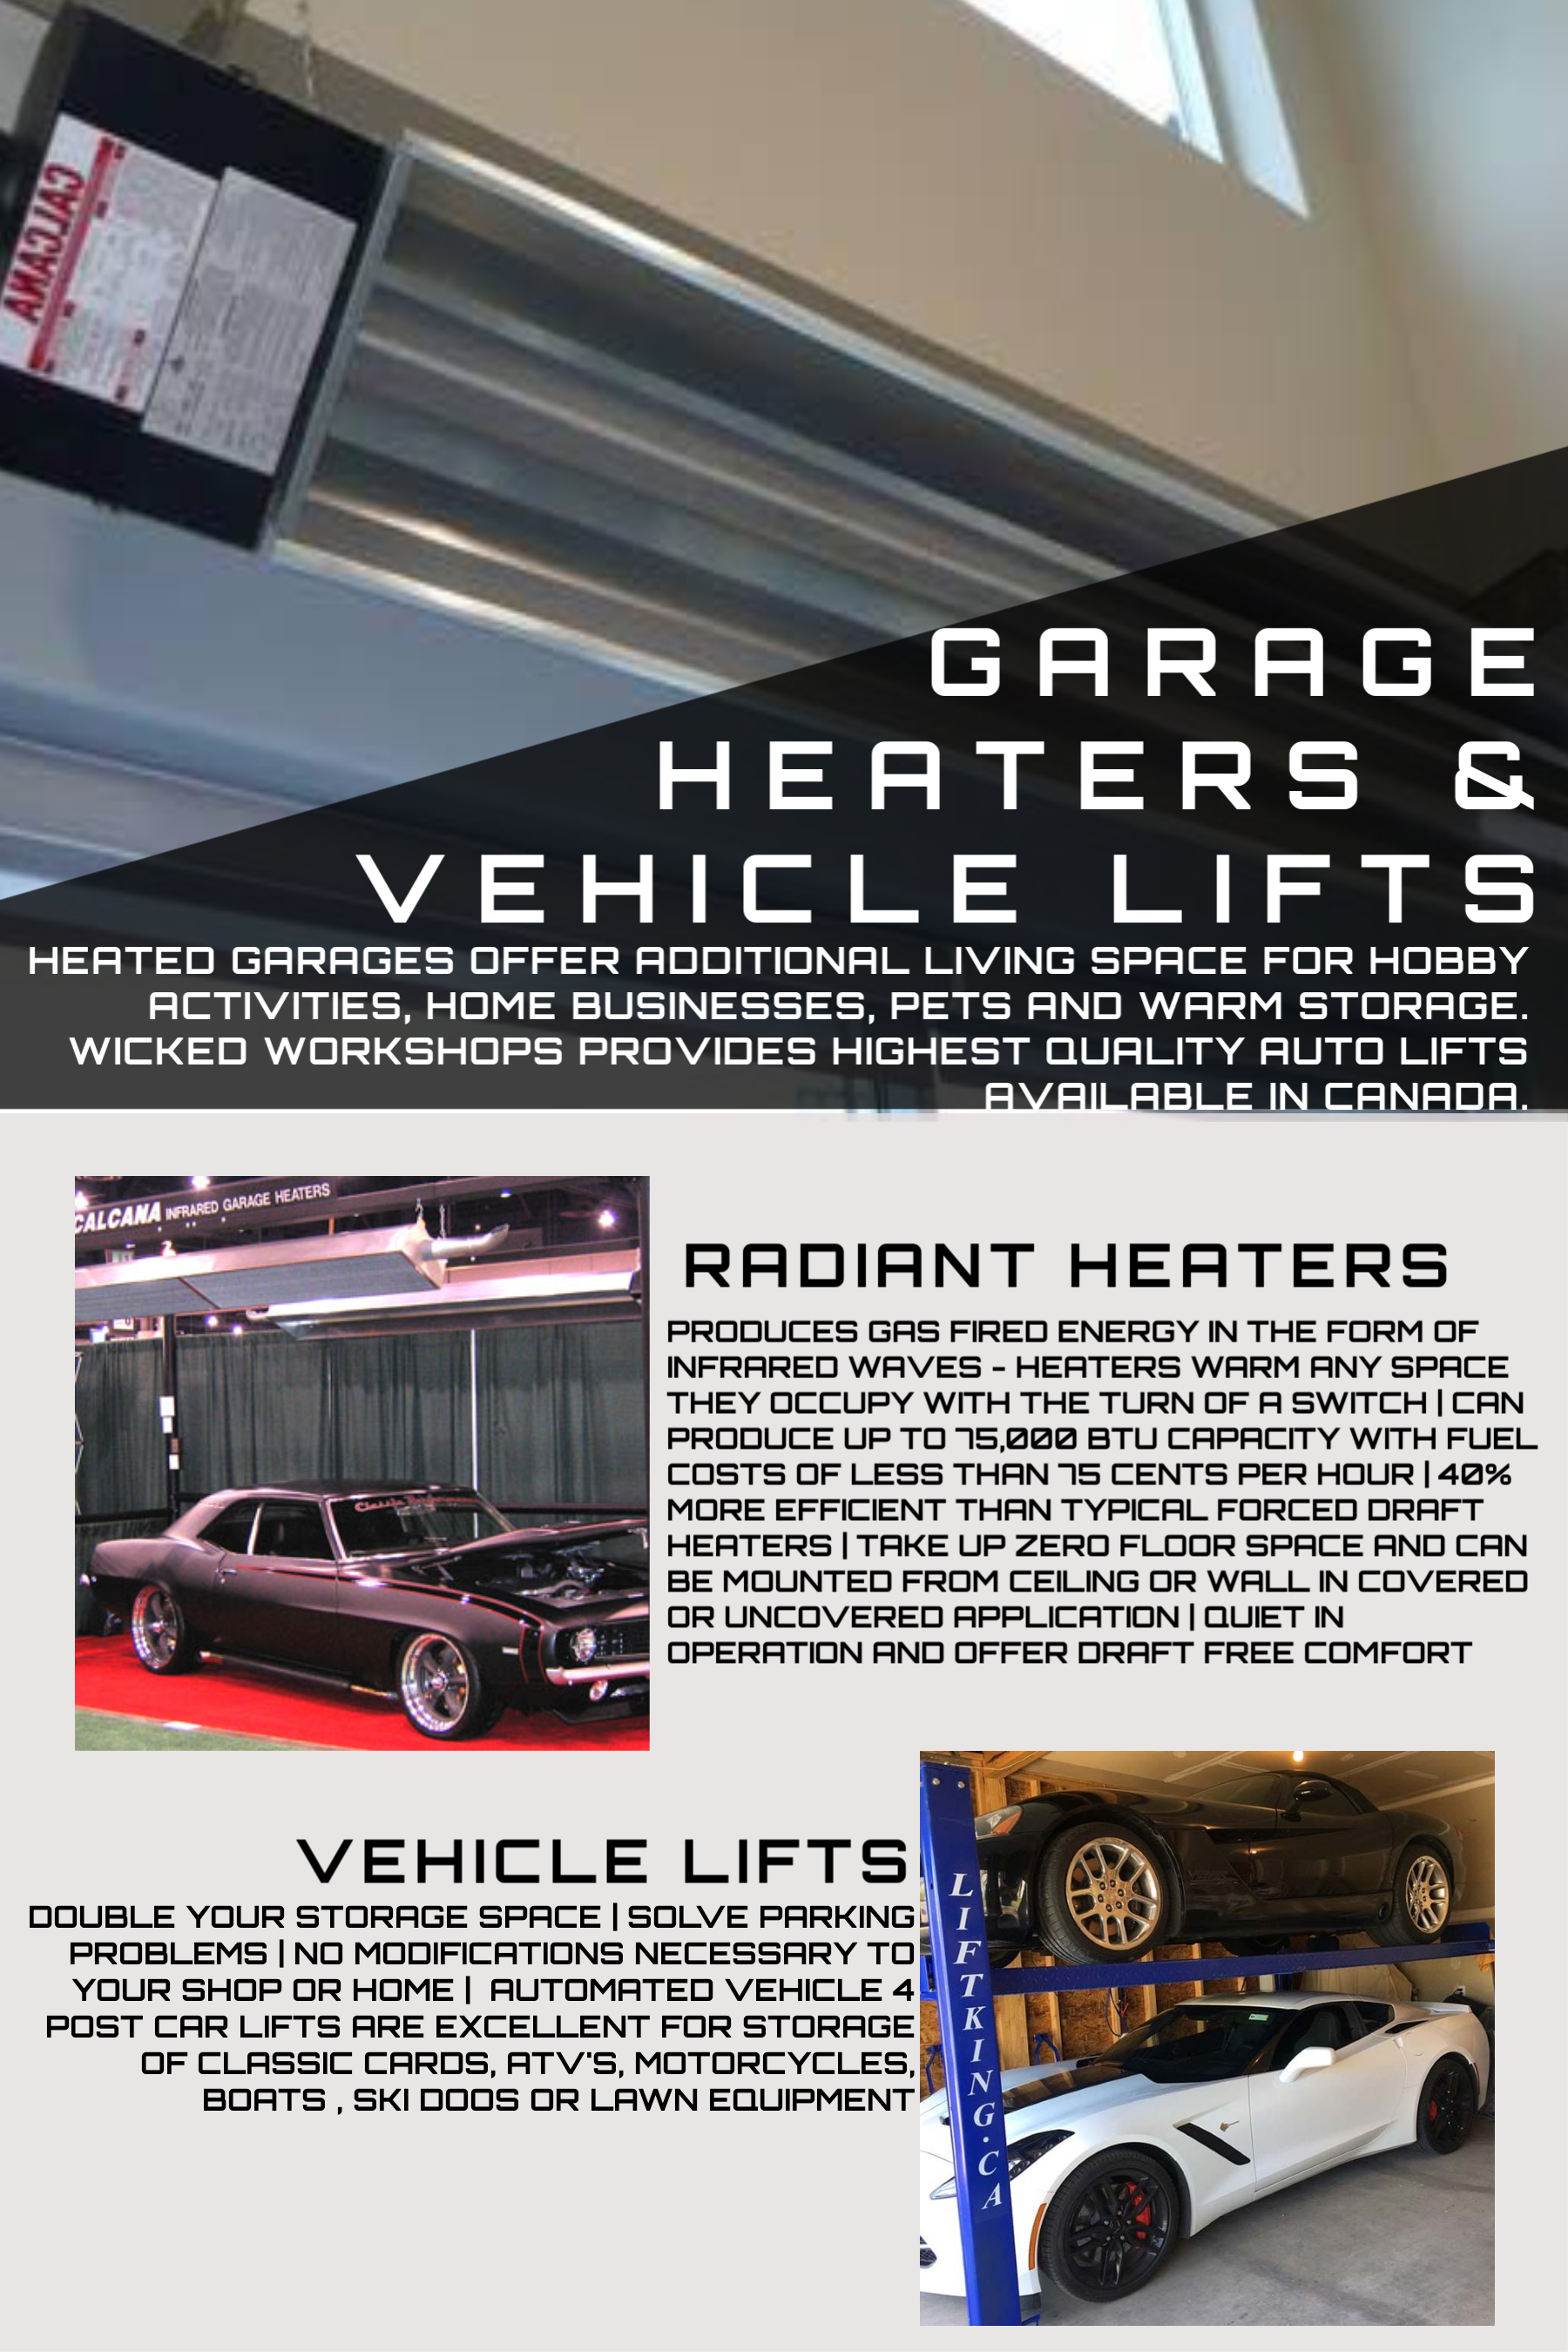 Garage Heaters & Lifts